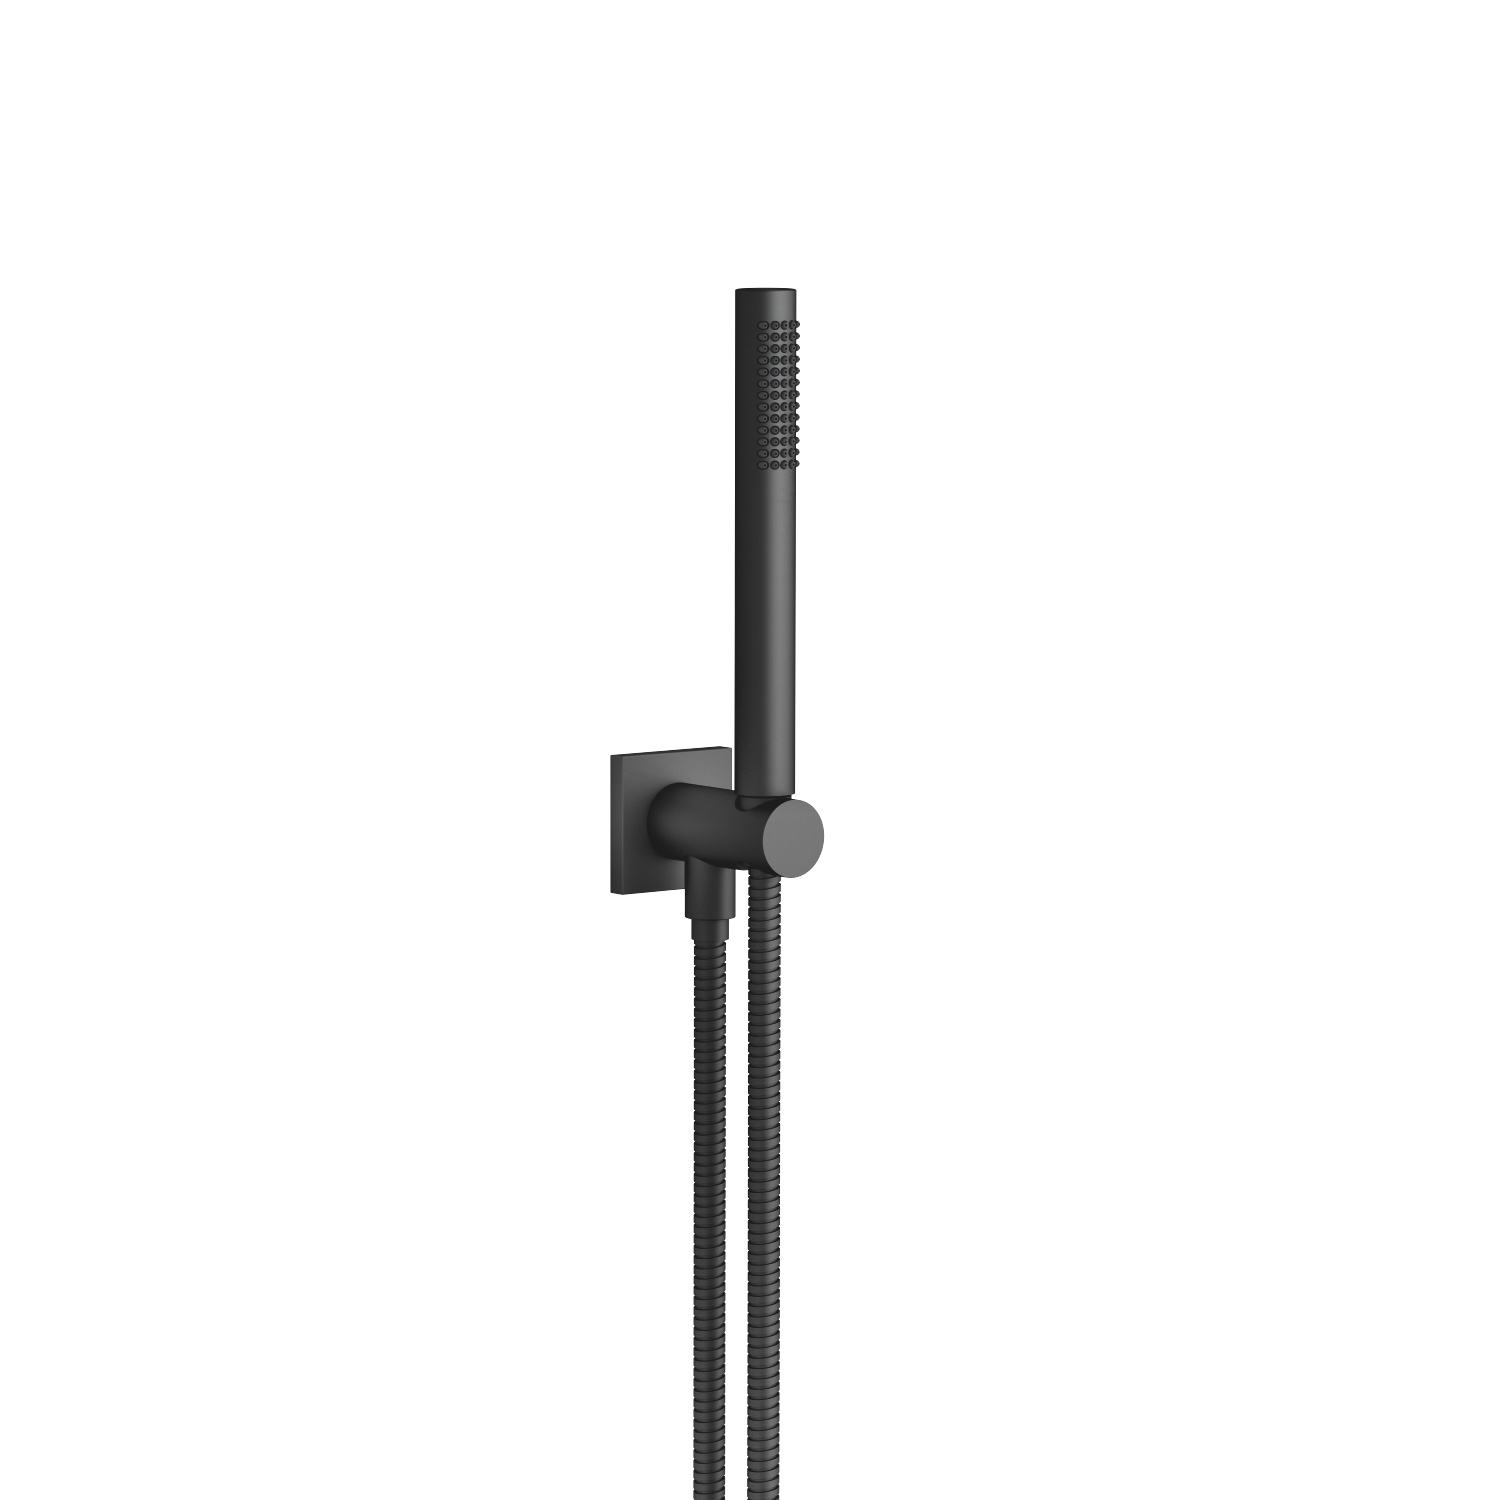 Hand shower set with integrated wall bracket - black matte - 27 802 970-33 0010